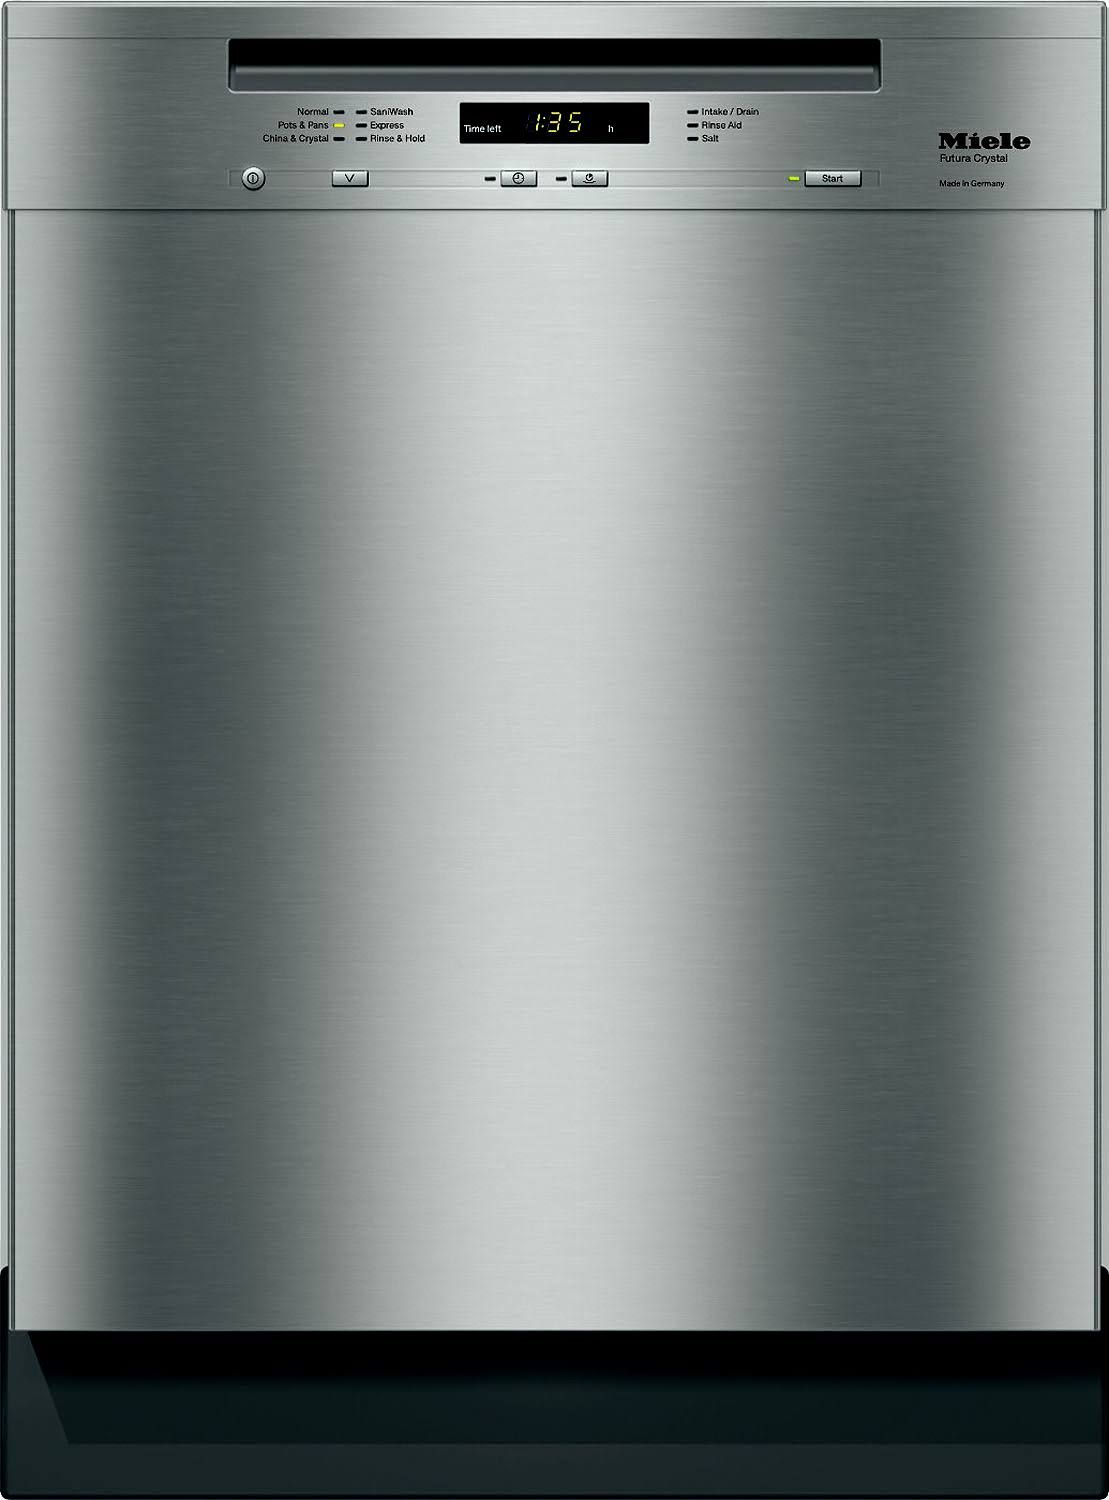 Miele G5105scu 24 Stainless Steel Full Console Dishwasher Miele Dishwasher Built In Dishwasher Quiet Dishwashers